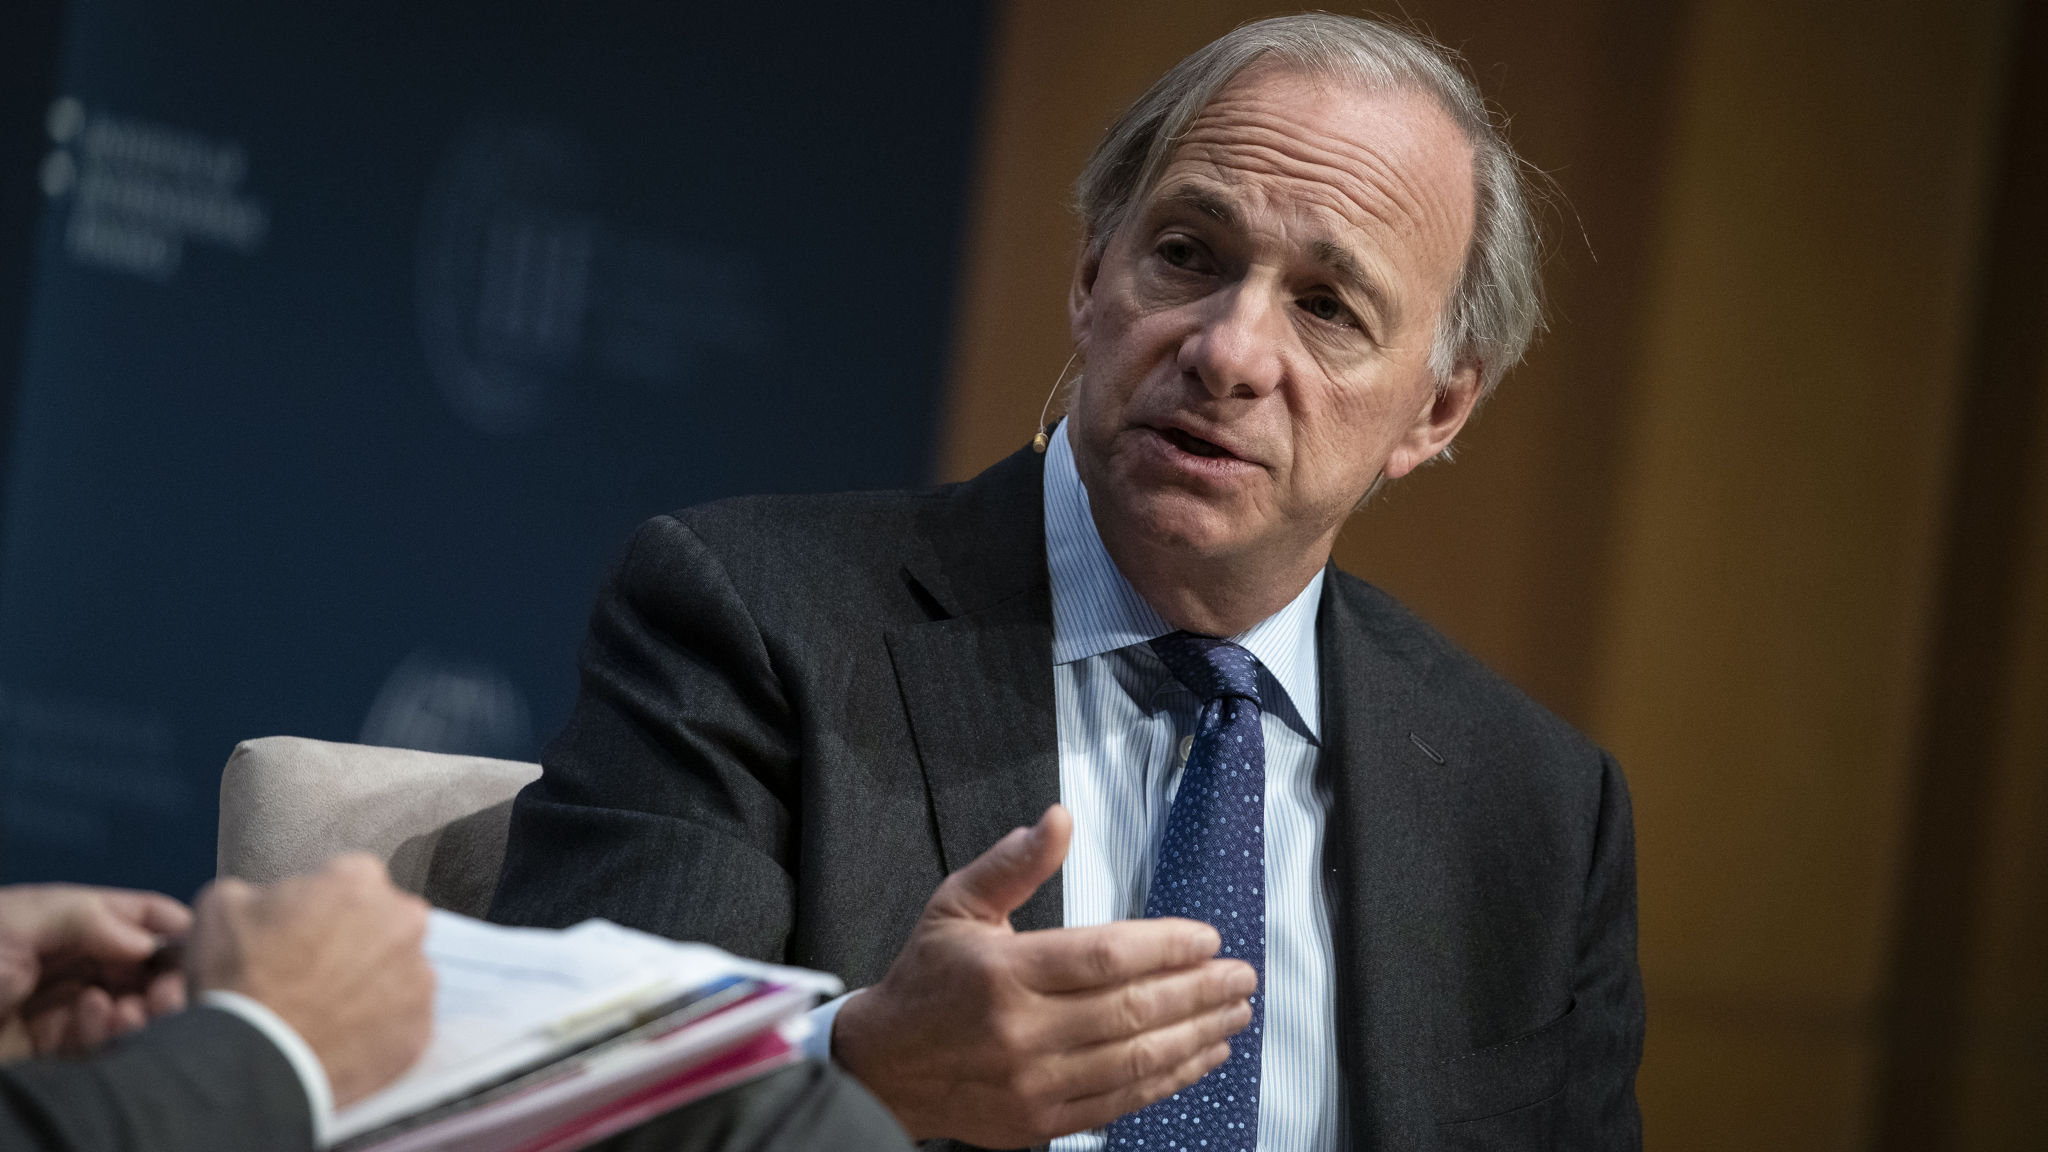 Bridgewater fails to recoup losses from low bond yields